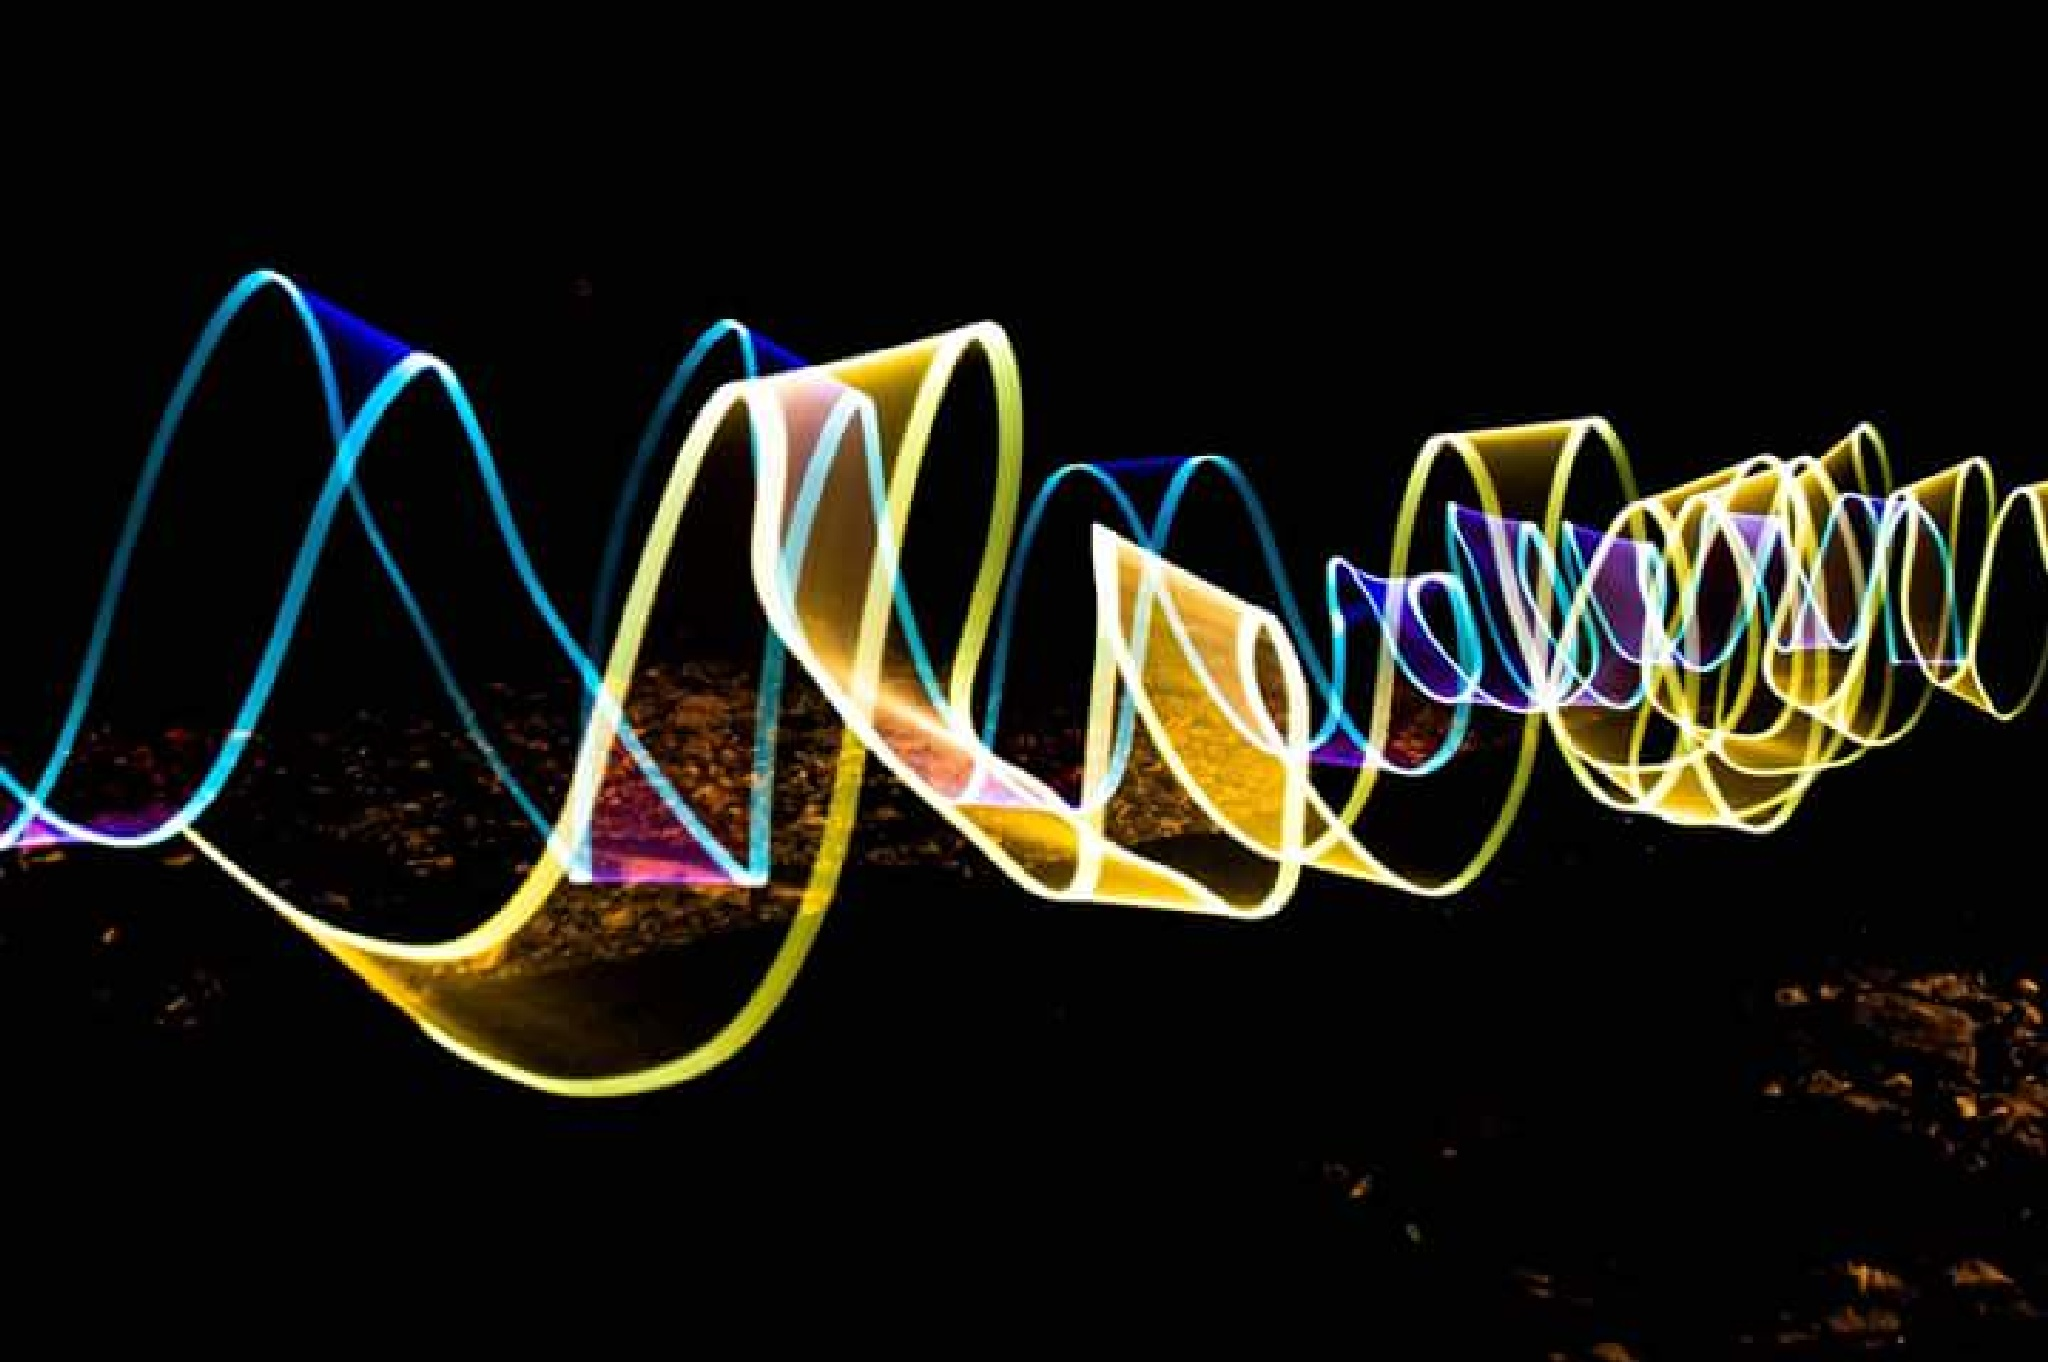 ribbons in the night  by chopperwatts4